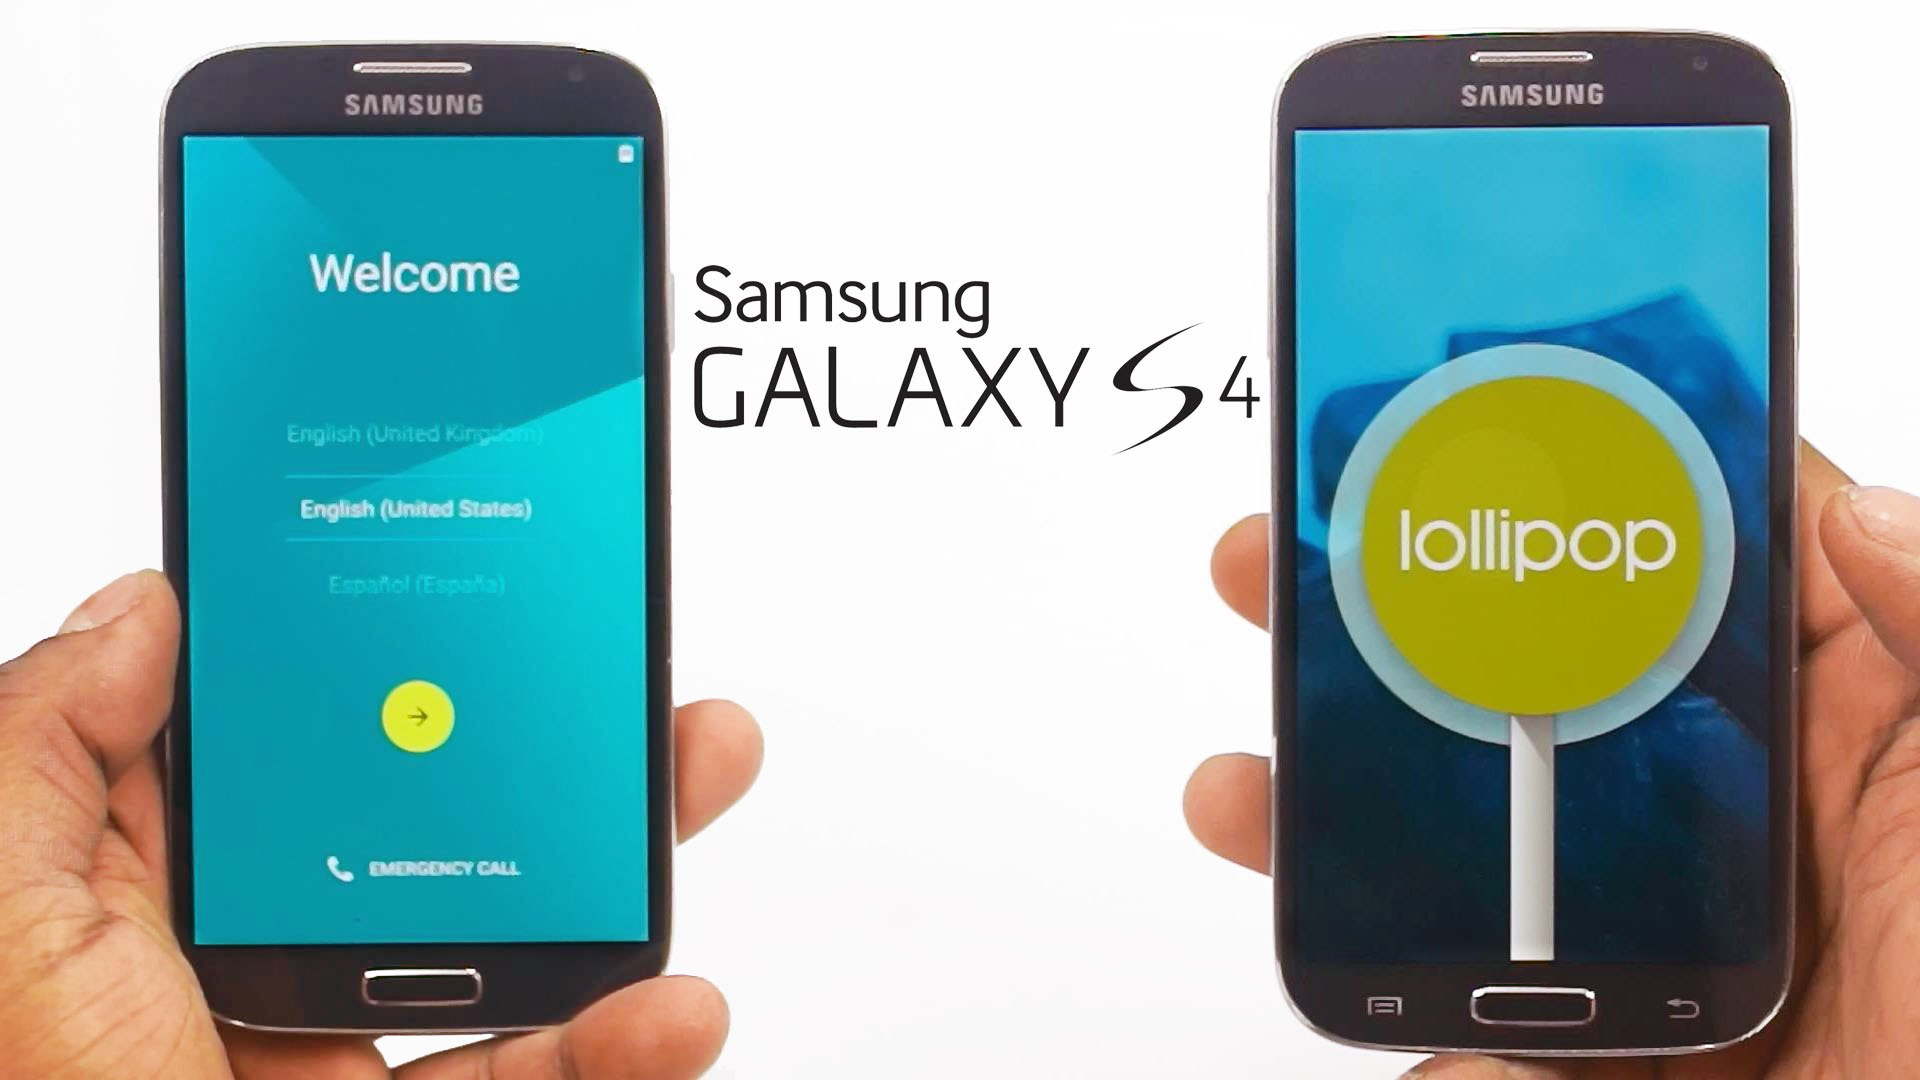 Android Lollipop For Galaxy S4 Now Rolling Out In India, Firmware For Exynos Variant Now Available